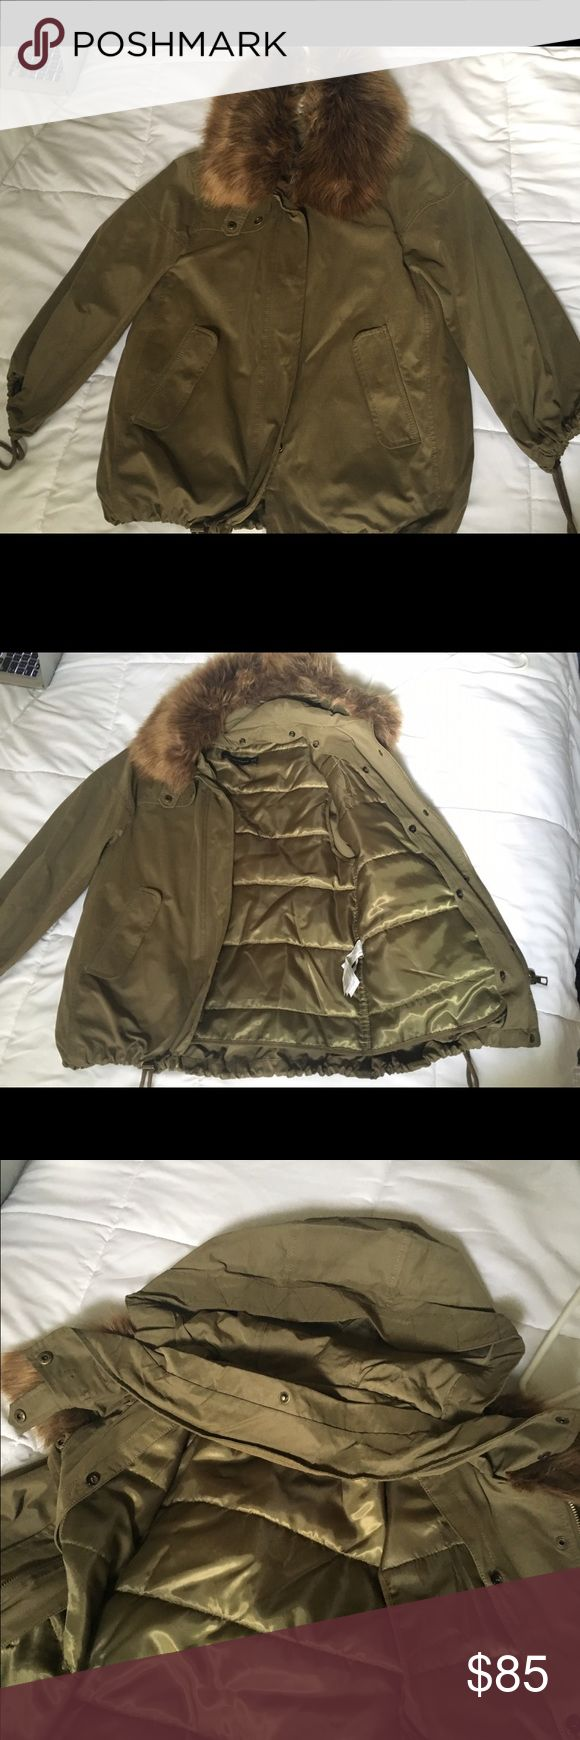 Zara Jacket NWOT Jacket with removable quilted lining. Bungees at the wrists and waist. Faux fur removable collar. Hidden hood made from the same fabric as body. Oversized fit, worn once Zara Jackets & Coats Utility Jackets